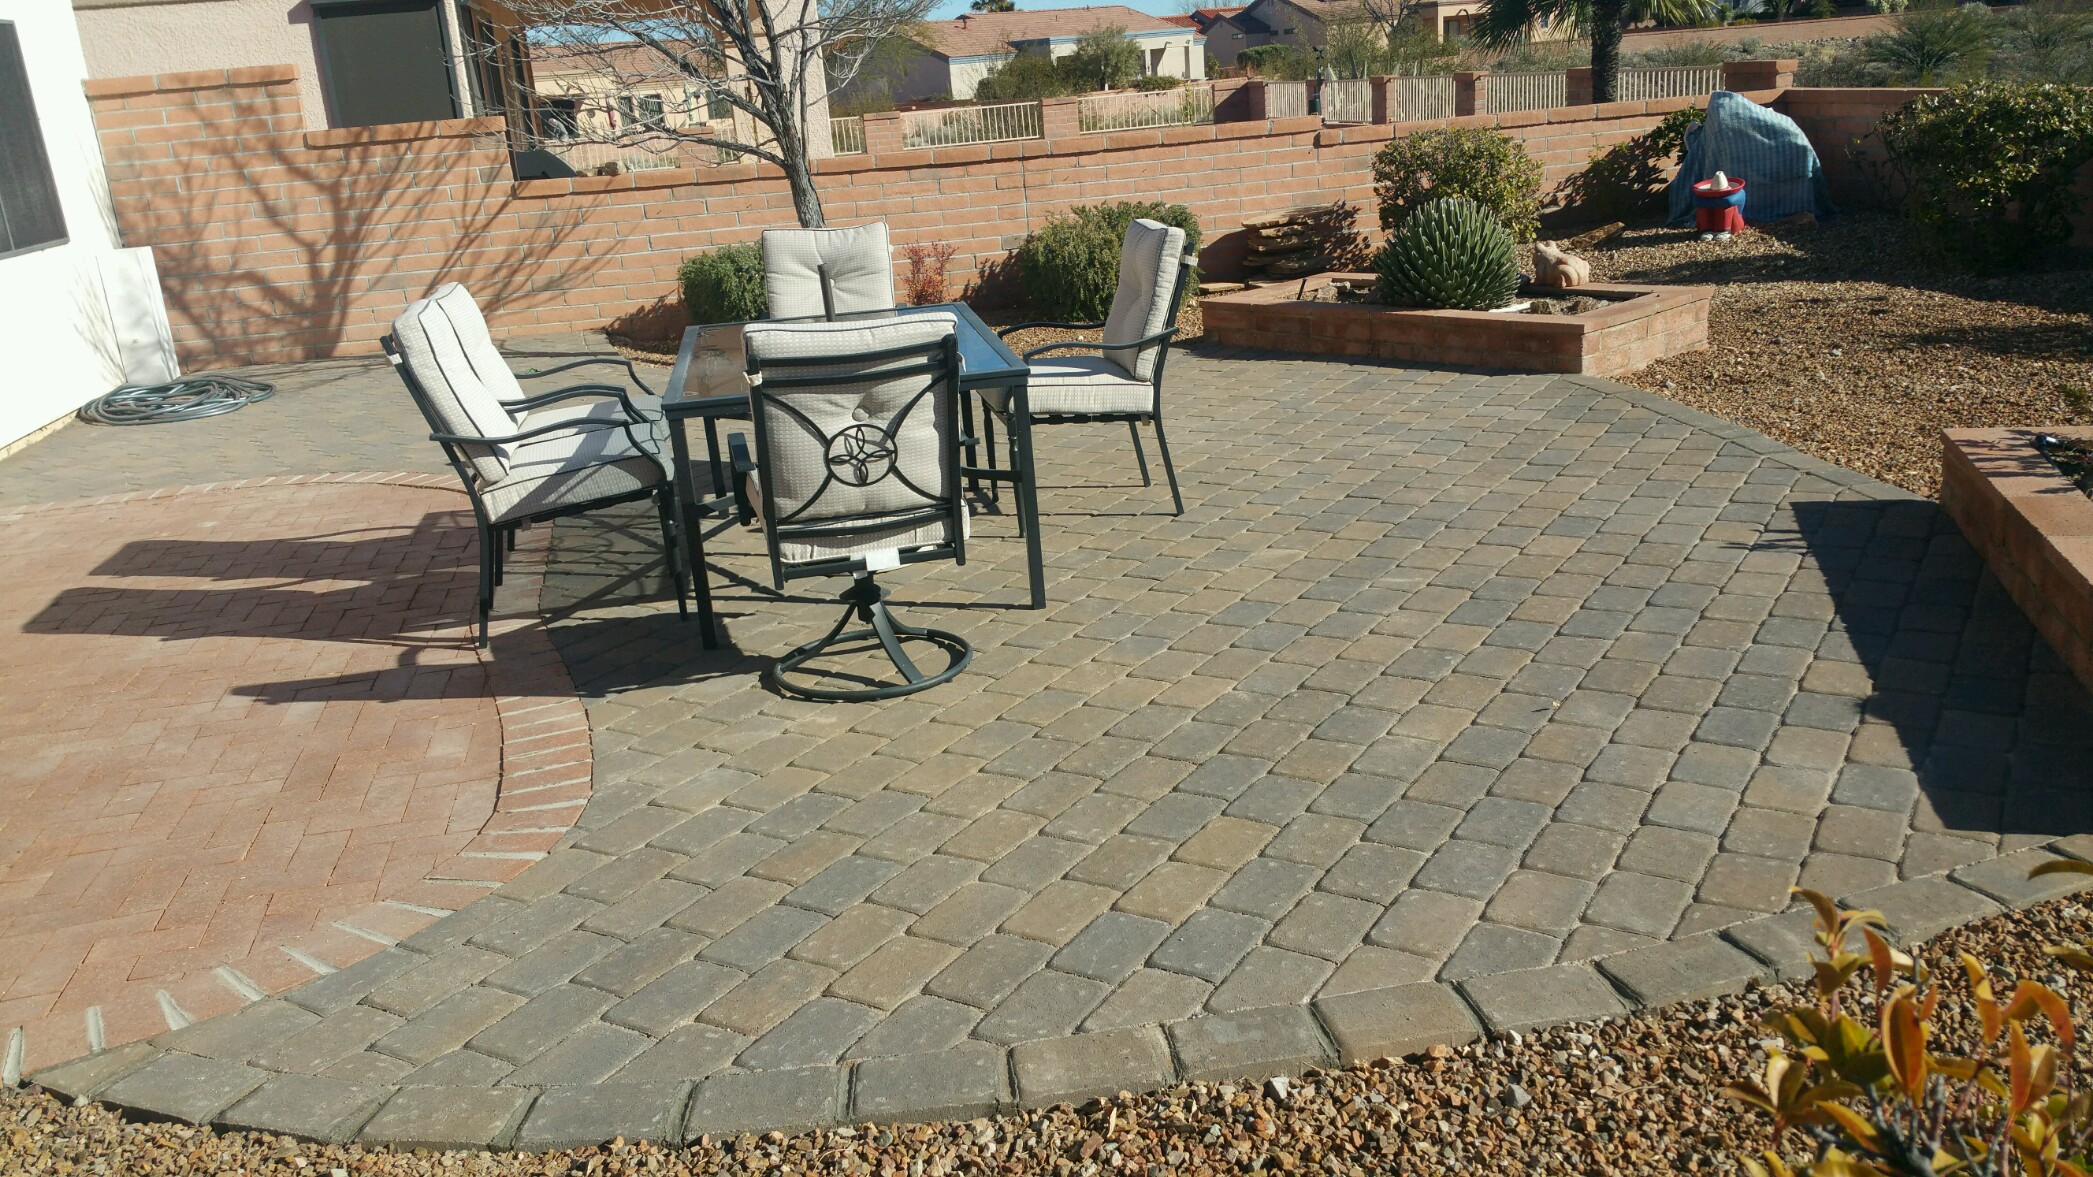 Extension to Patio